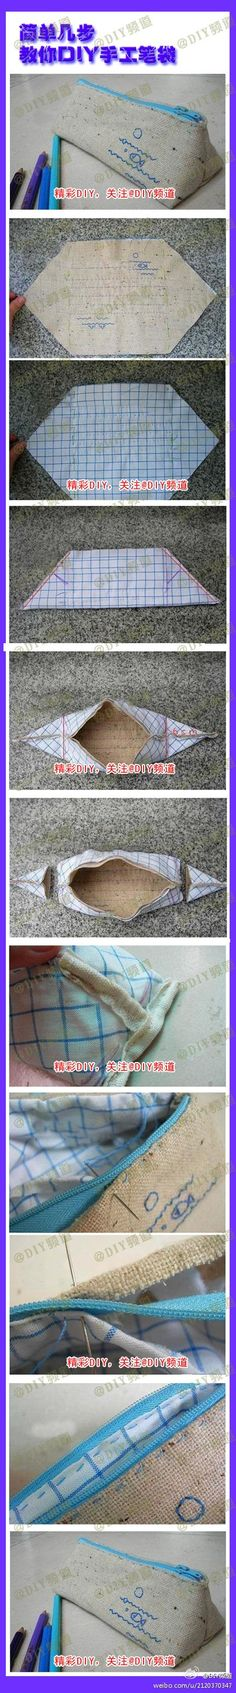 tutorial sewing pouch ♥